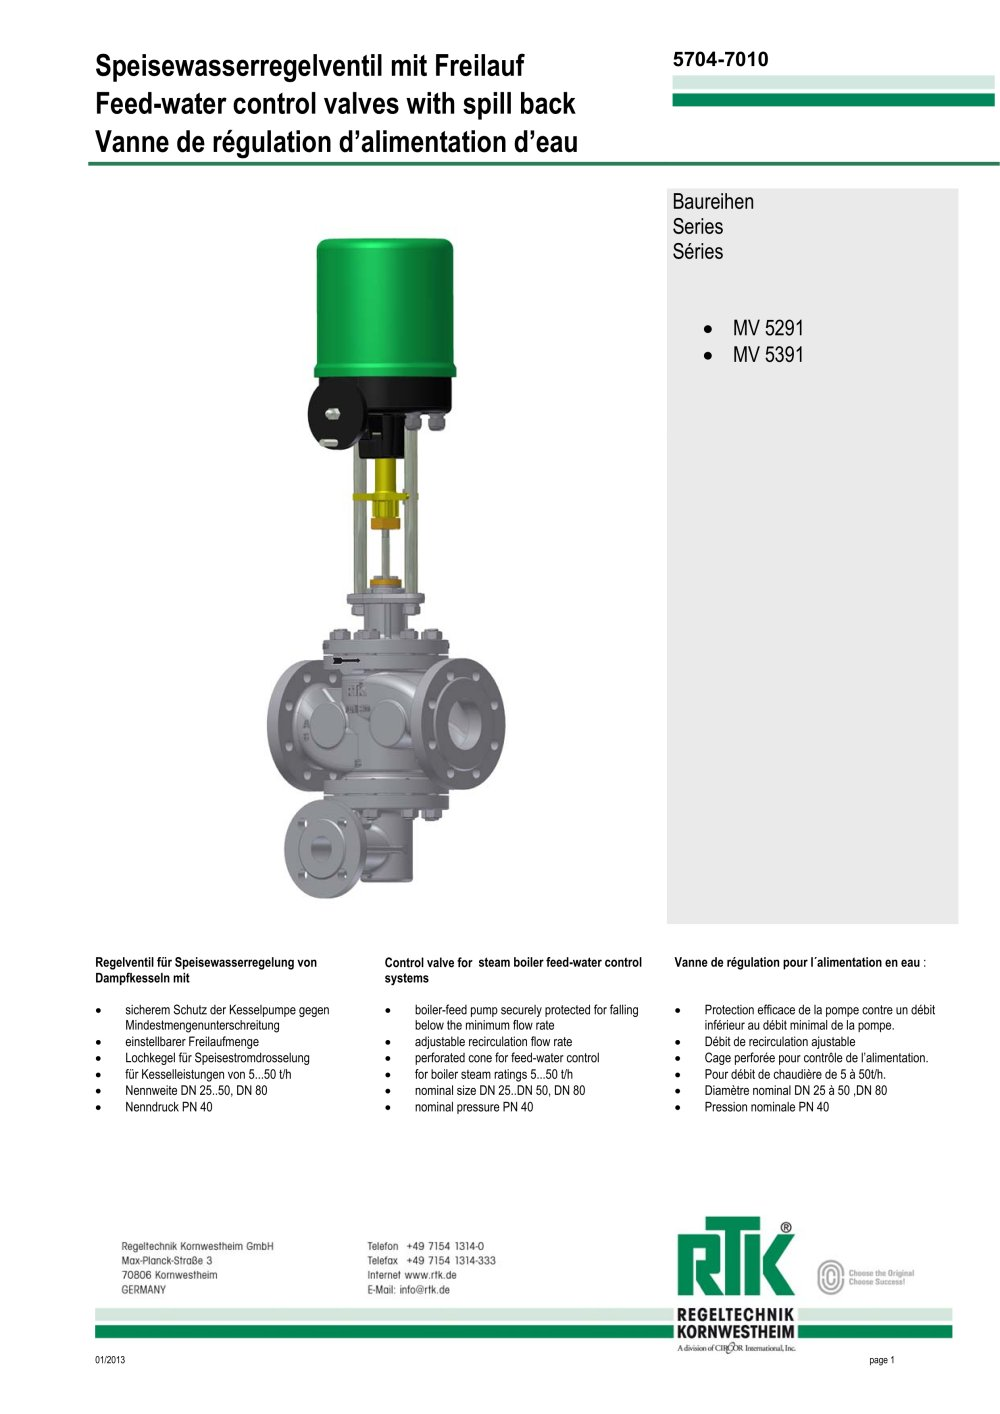 Feed Water Feed-water Control Valves With